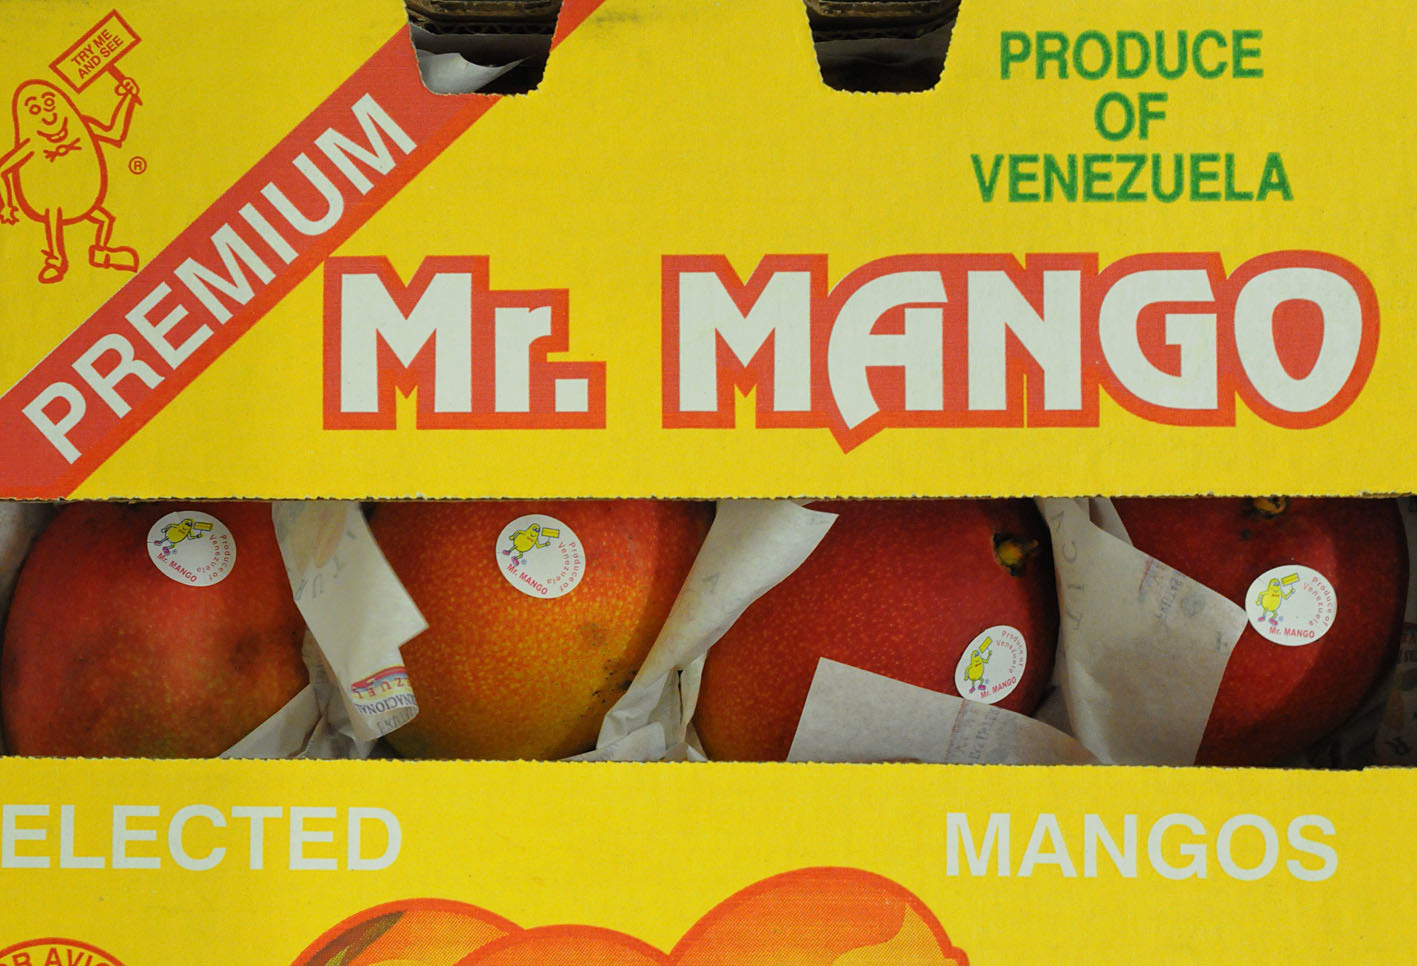 mangoes-from-venezuela.jpg?mtime=20170922143749#asset:11534